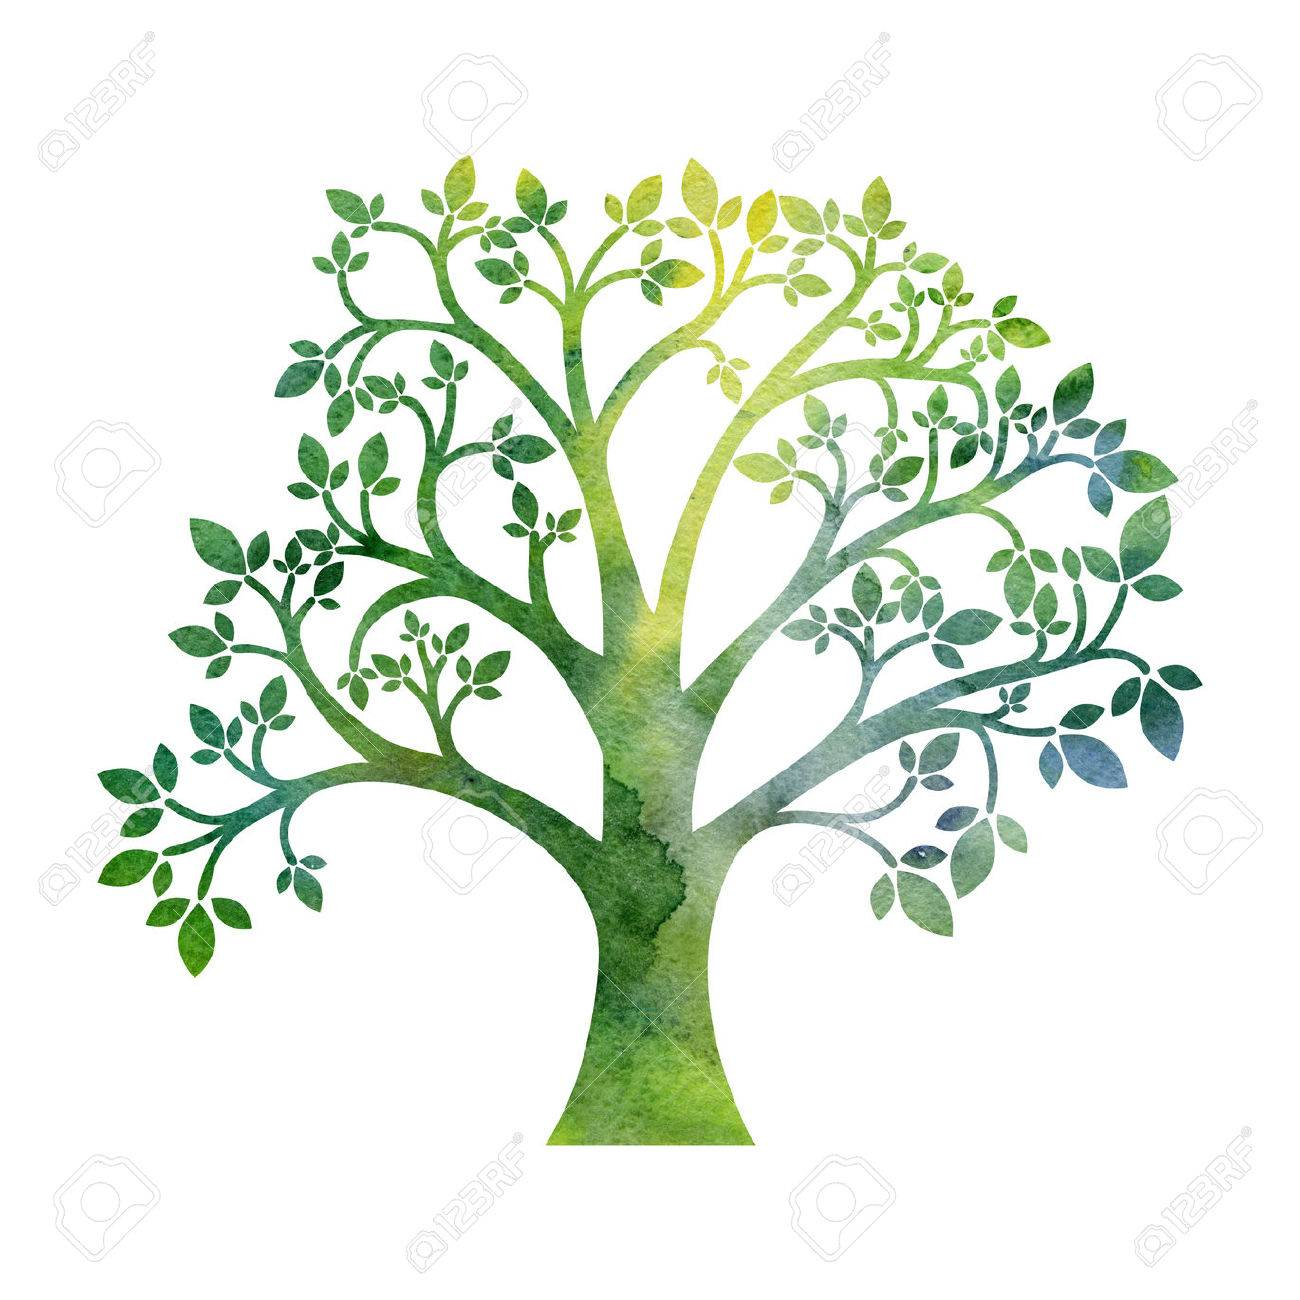 1300x1300 Green Silhouette Of Tree With Leaves Drawing In Watercolor, Hand